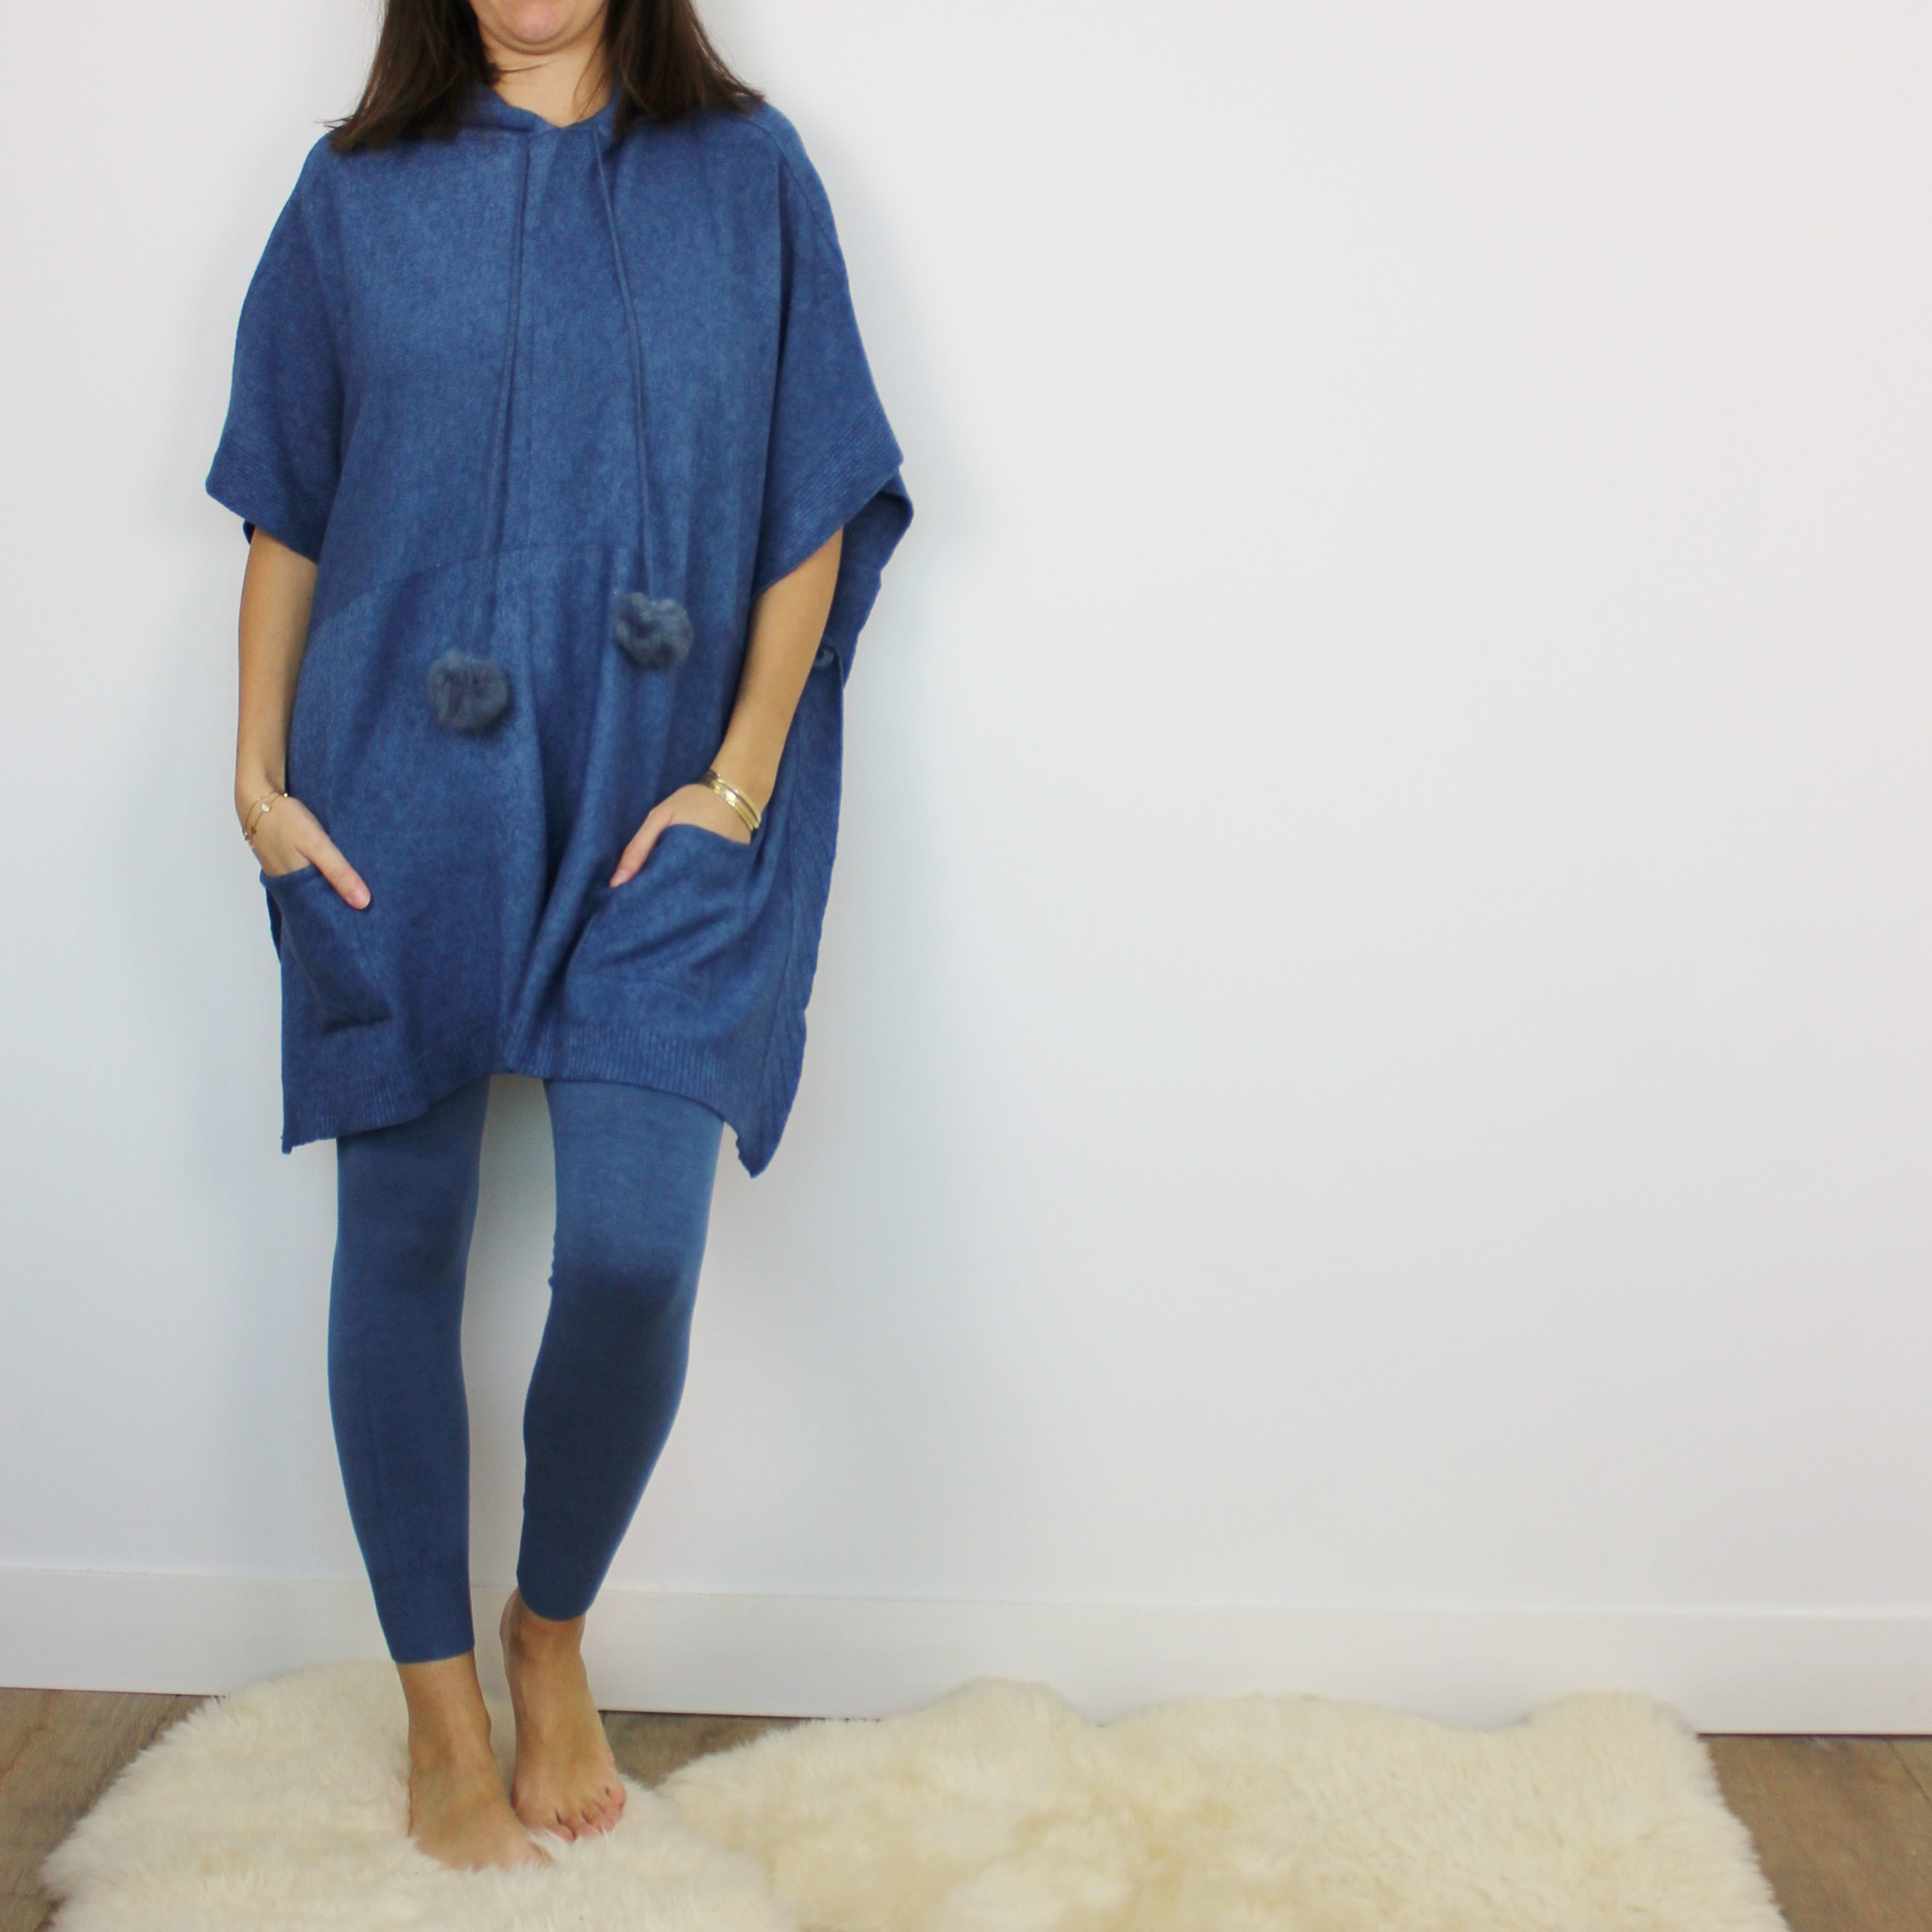 Poncho Cocooning laine   cachemire Bleu - Homewear Femme - Cocoony.fr 38798b925b1a